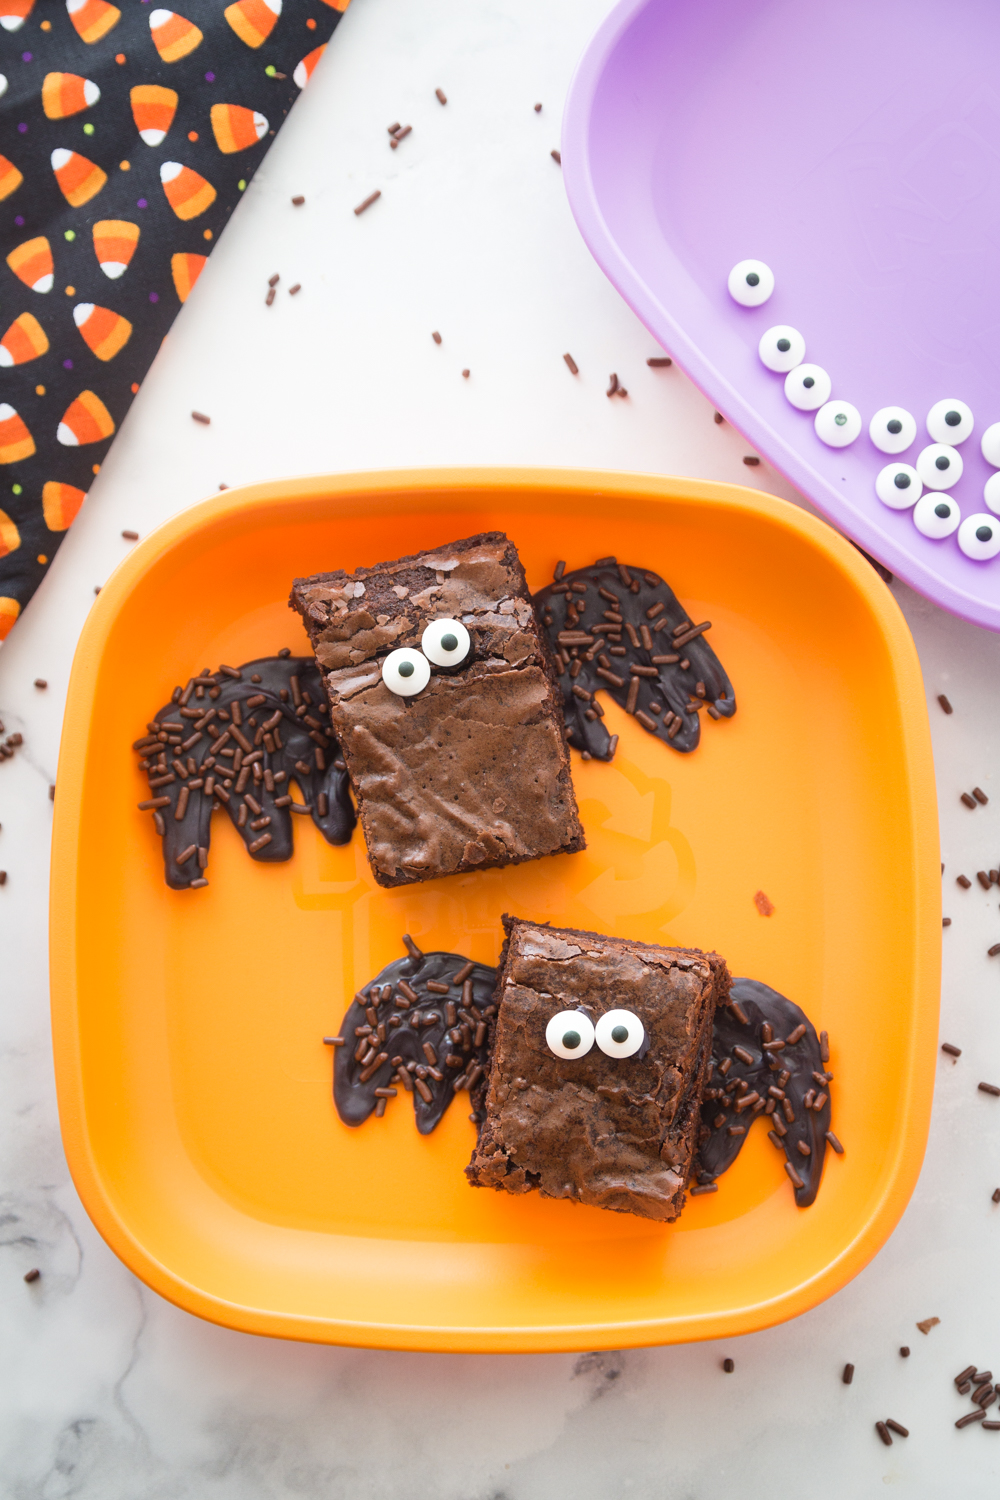 These Halloween Brownie Bats are a delicious Halloween treat the kids will love! Brownie Mix, googly eyes and sprinkles make them a boo-tastic treat!